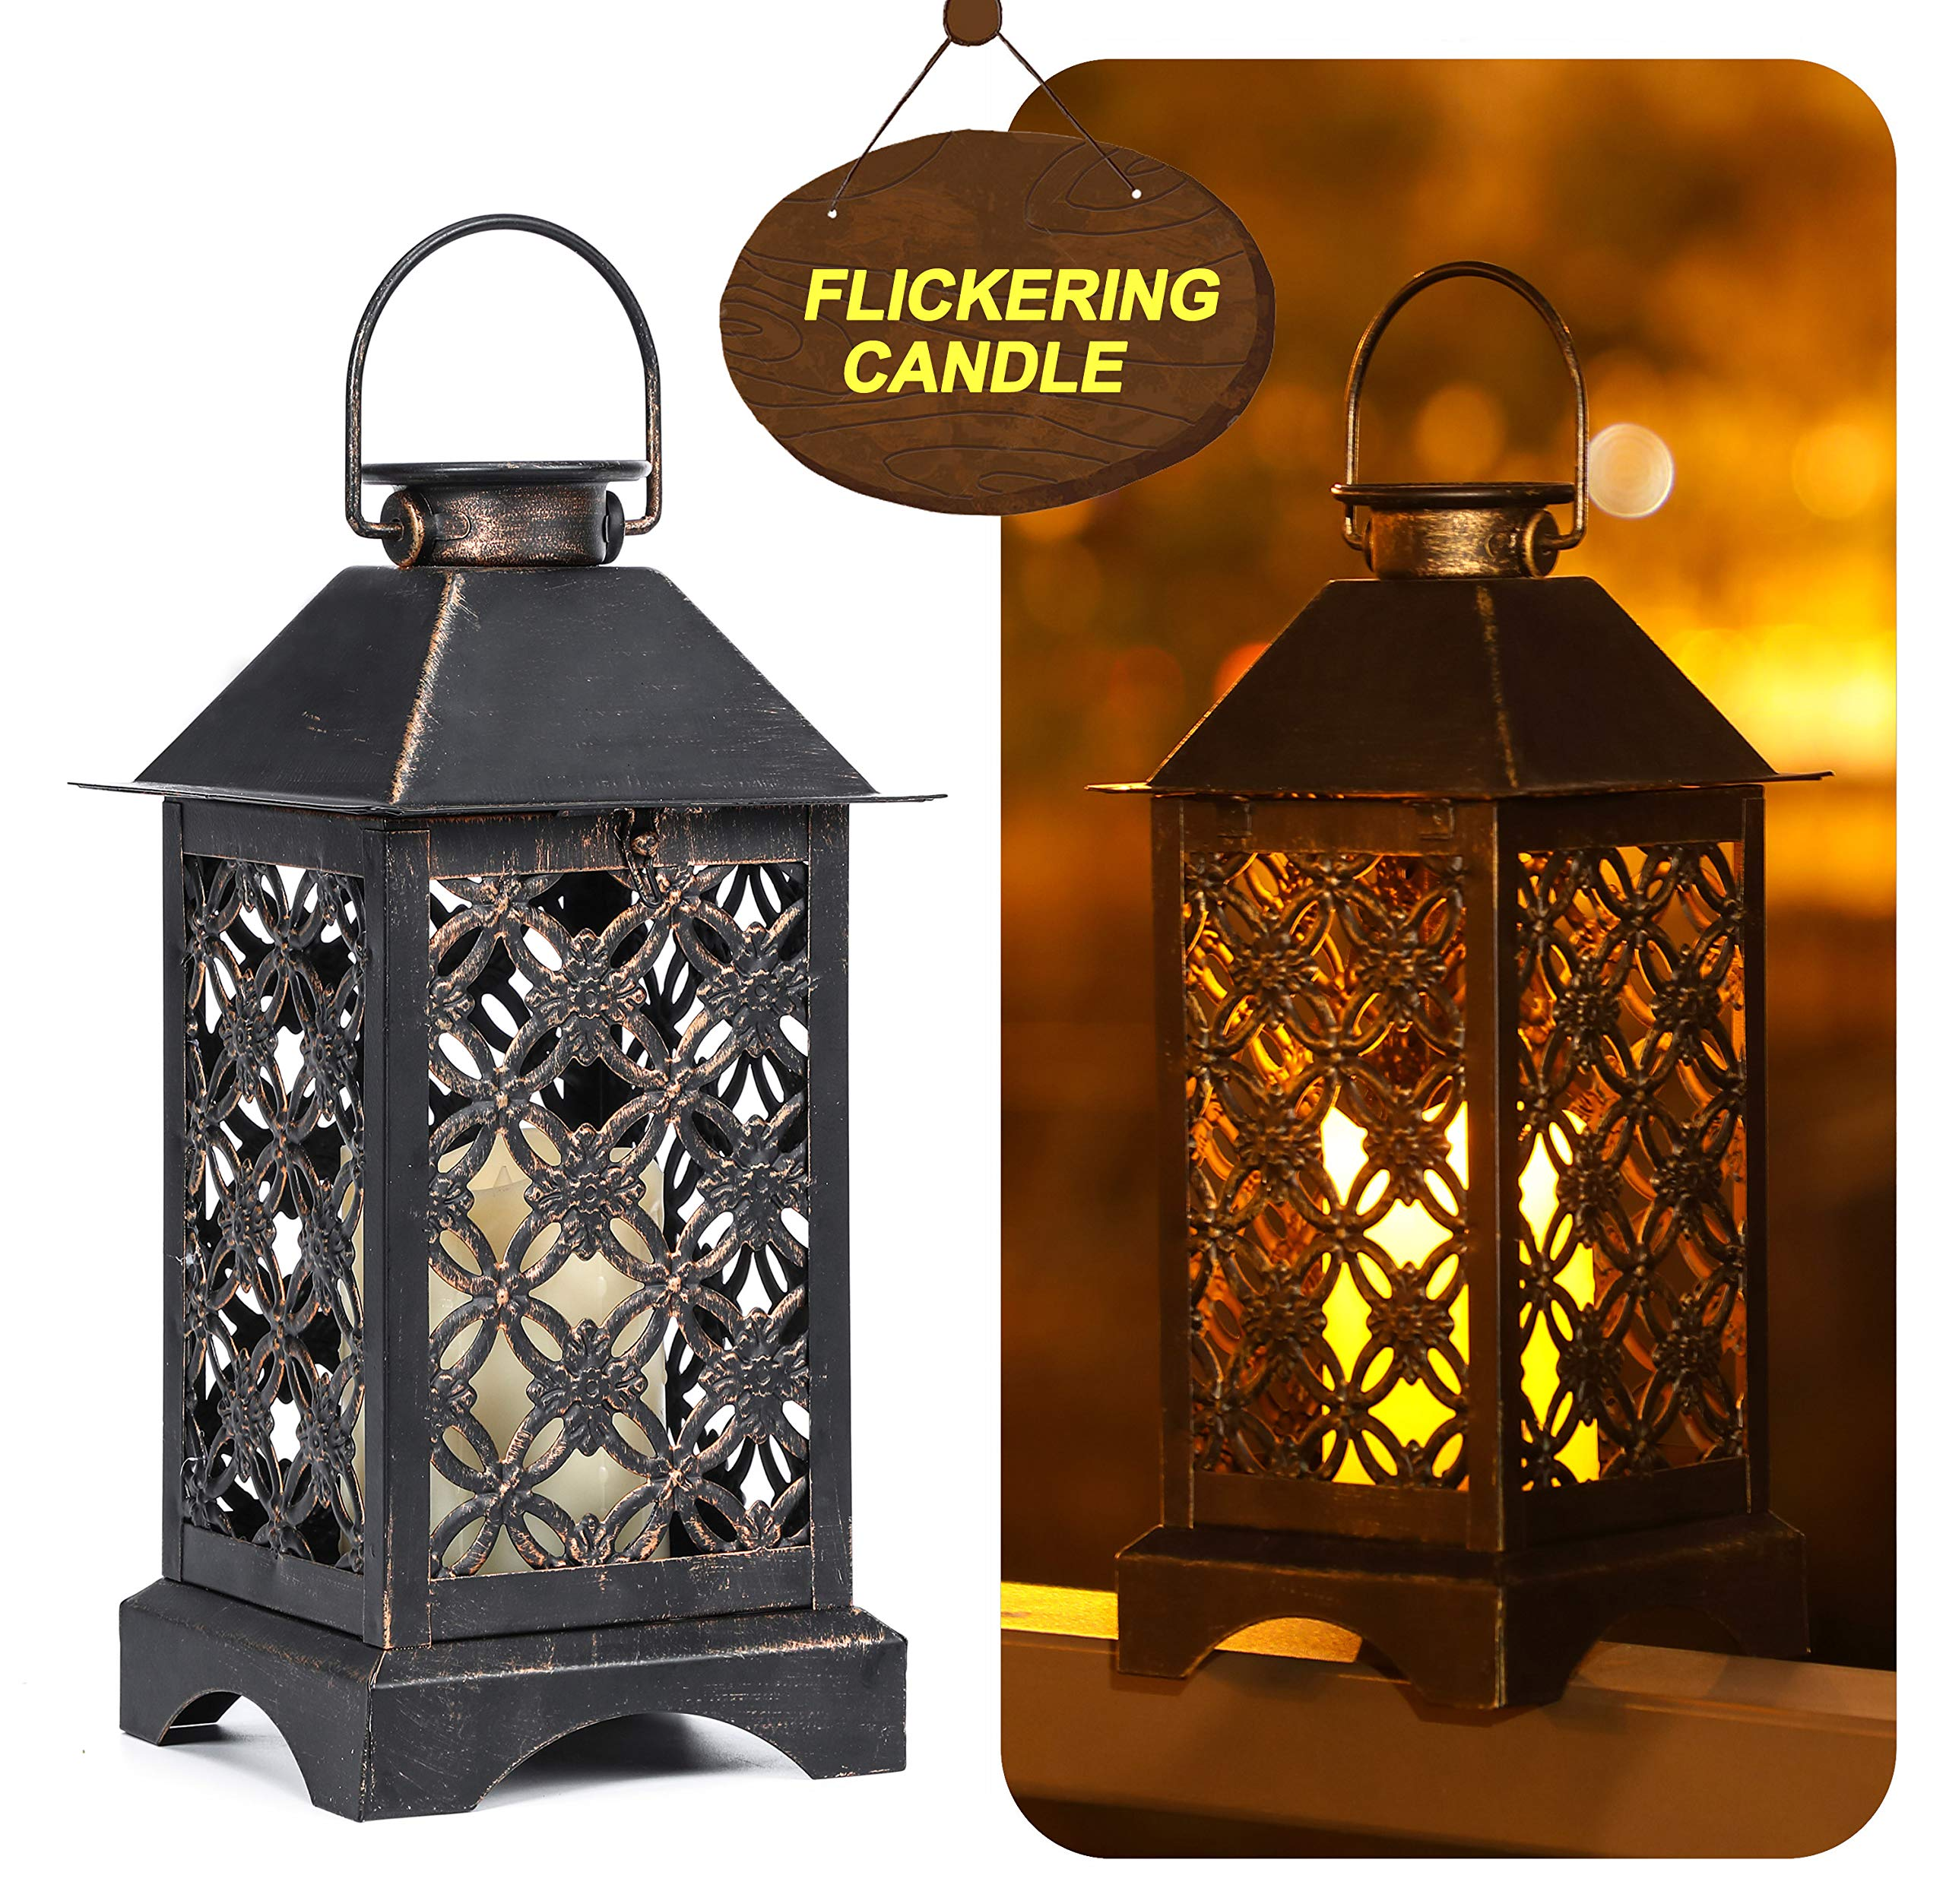 Solar Lantern Indoor or Outdoor 4LeafClover Bronze | Antique Metal Construction | Solar Powered Hanging Lantern or Tabletop with LED Flickering Candle 5.5 x 5.5 x 11 inches